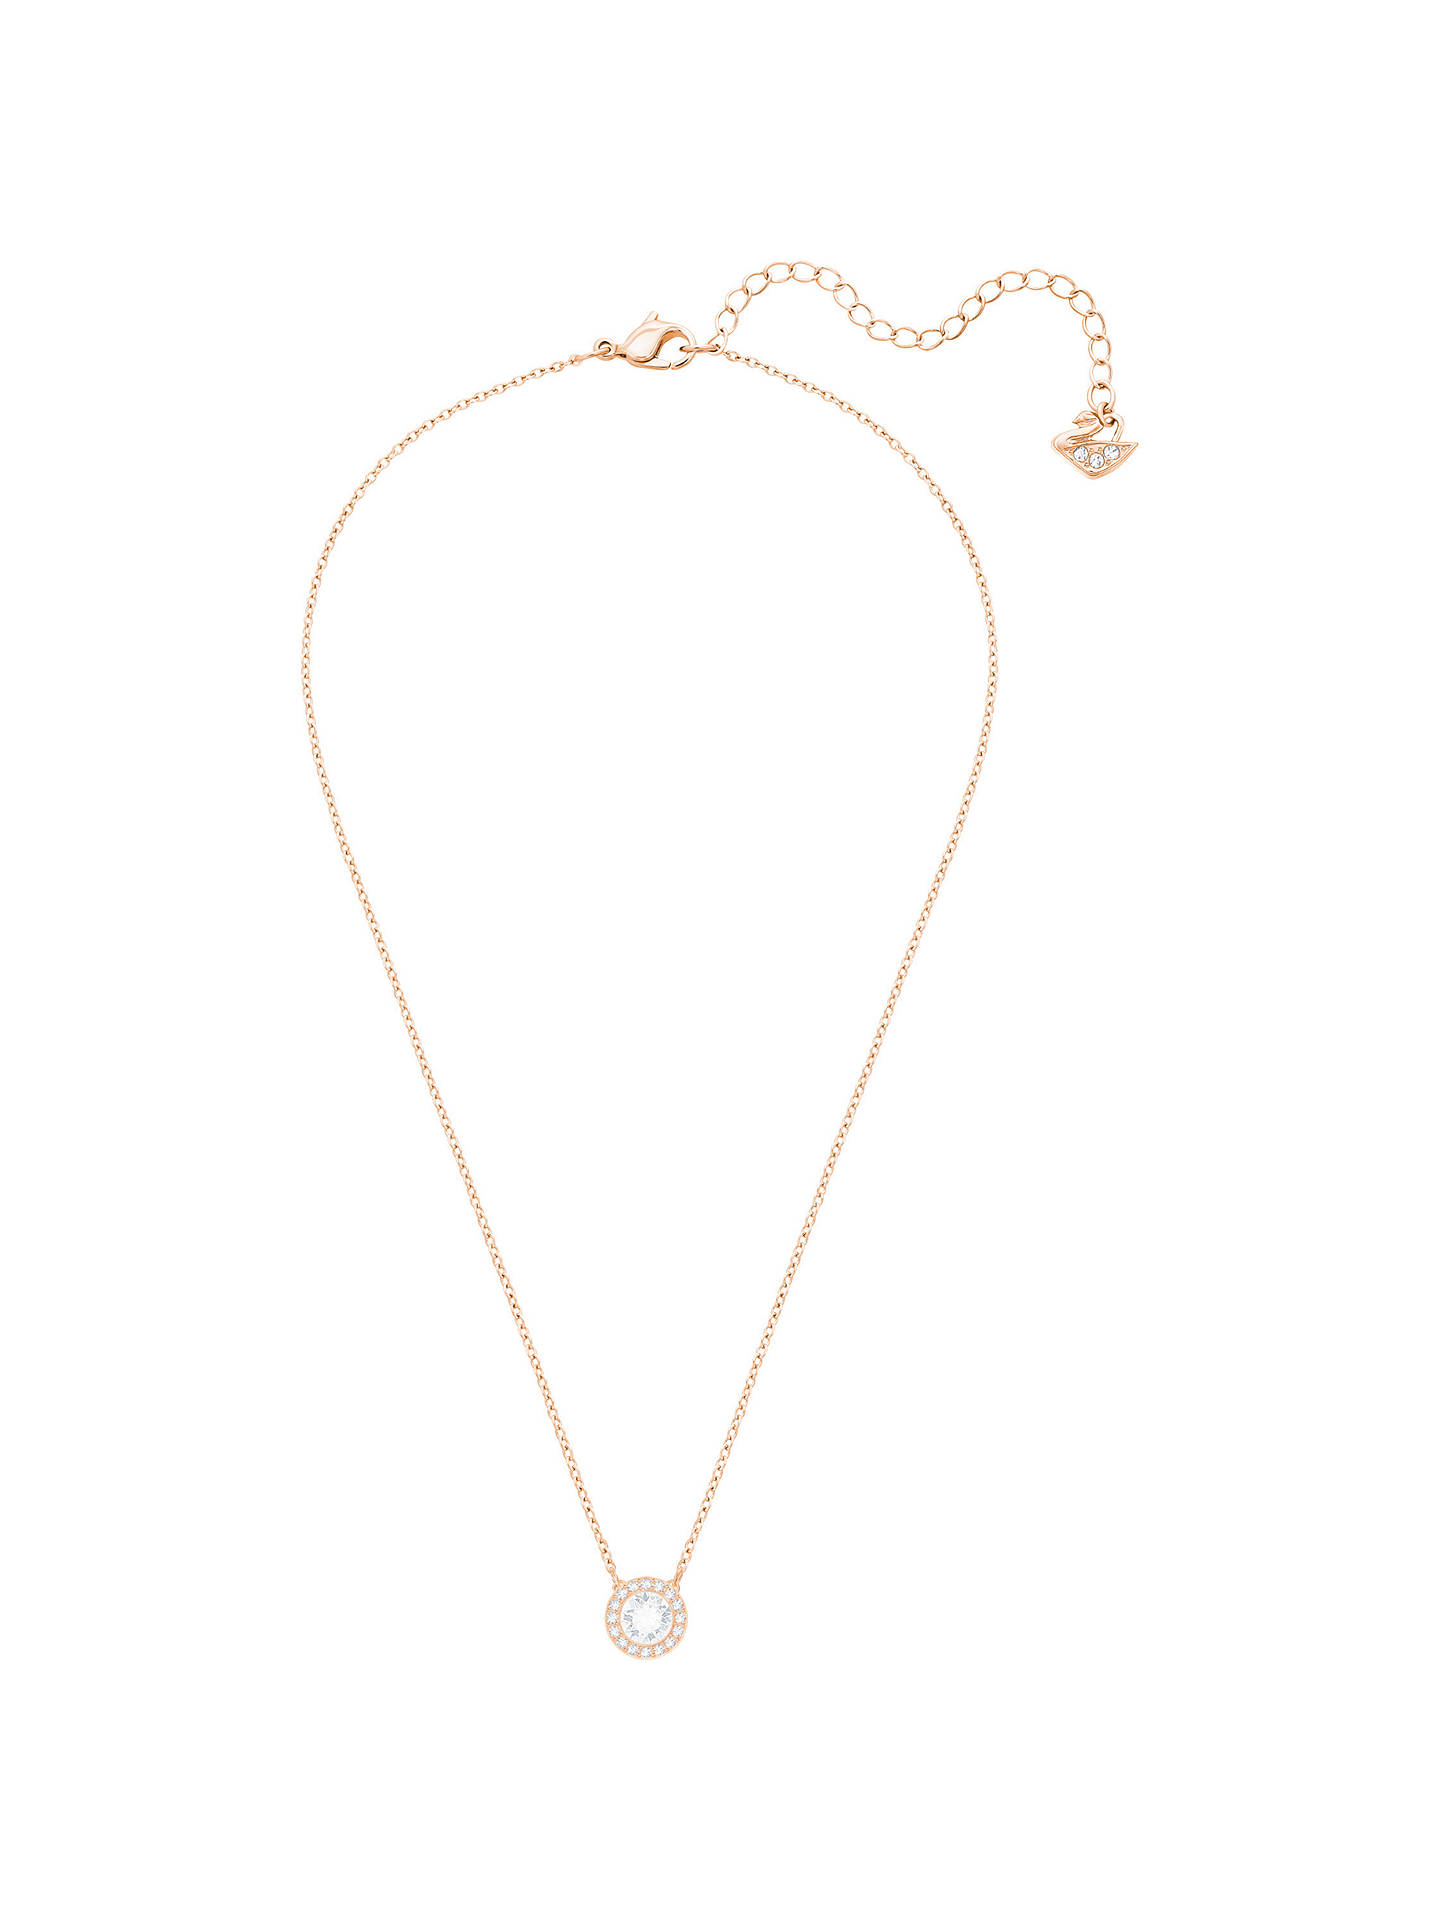 BuySwarovski Angelic Round Crystal Pendant Necklace, Rose Gold/Clear Online at johnlewis.com